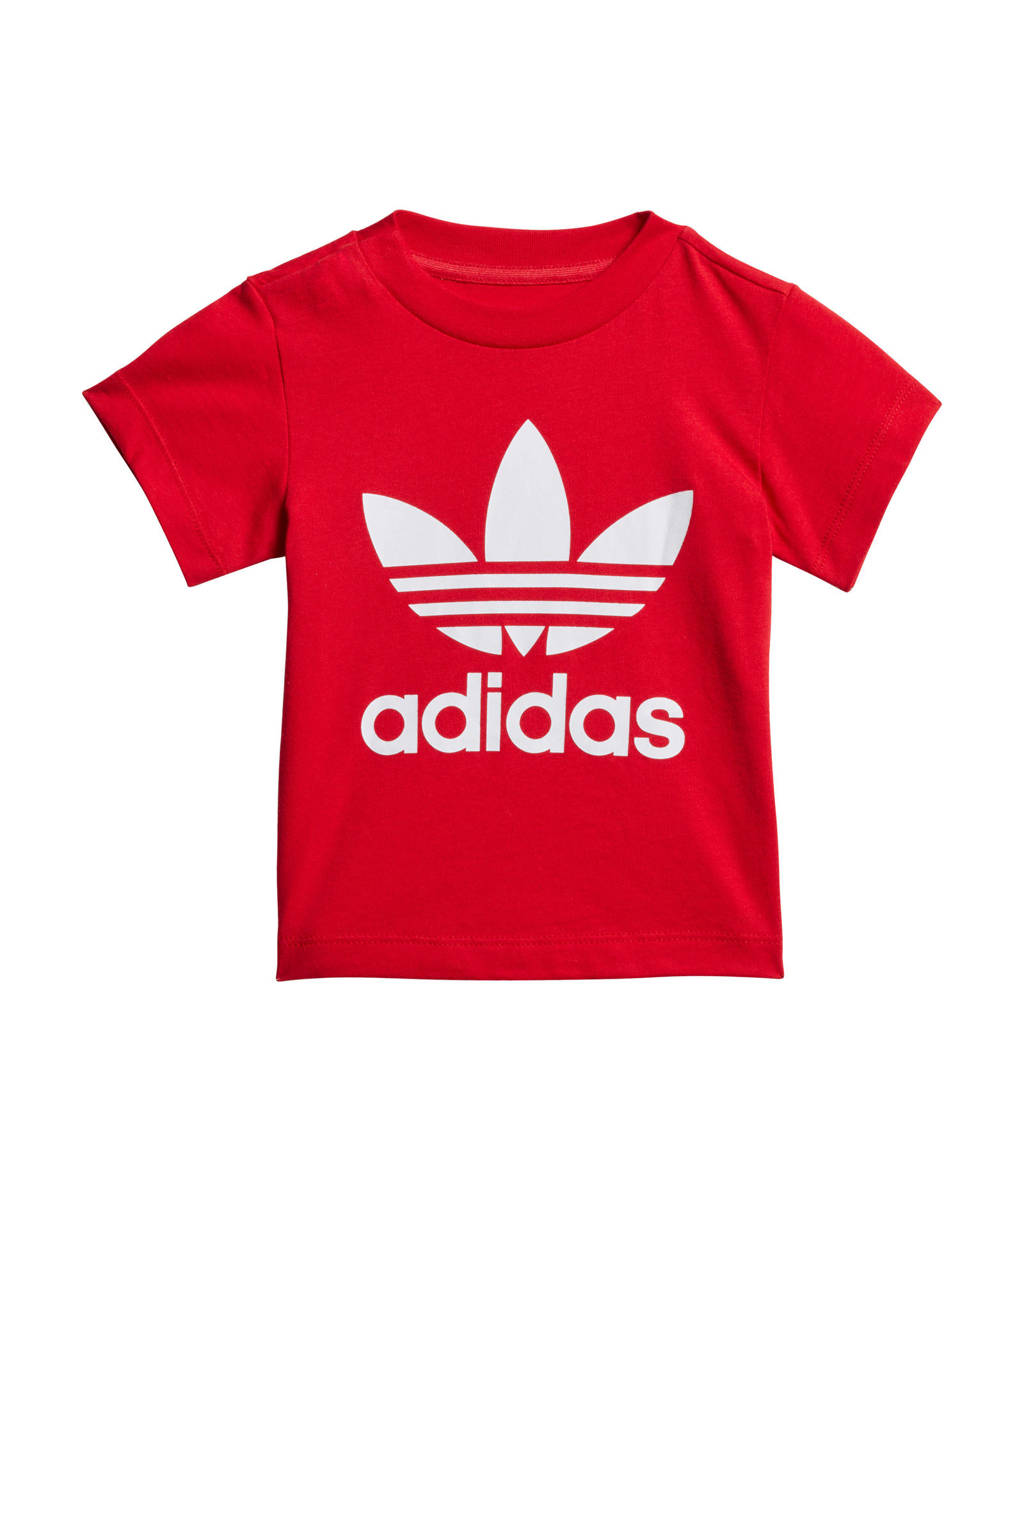 adidas Originals T-shirt rood/wit, Rood/wit